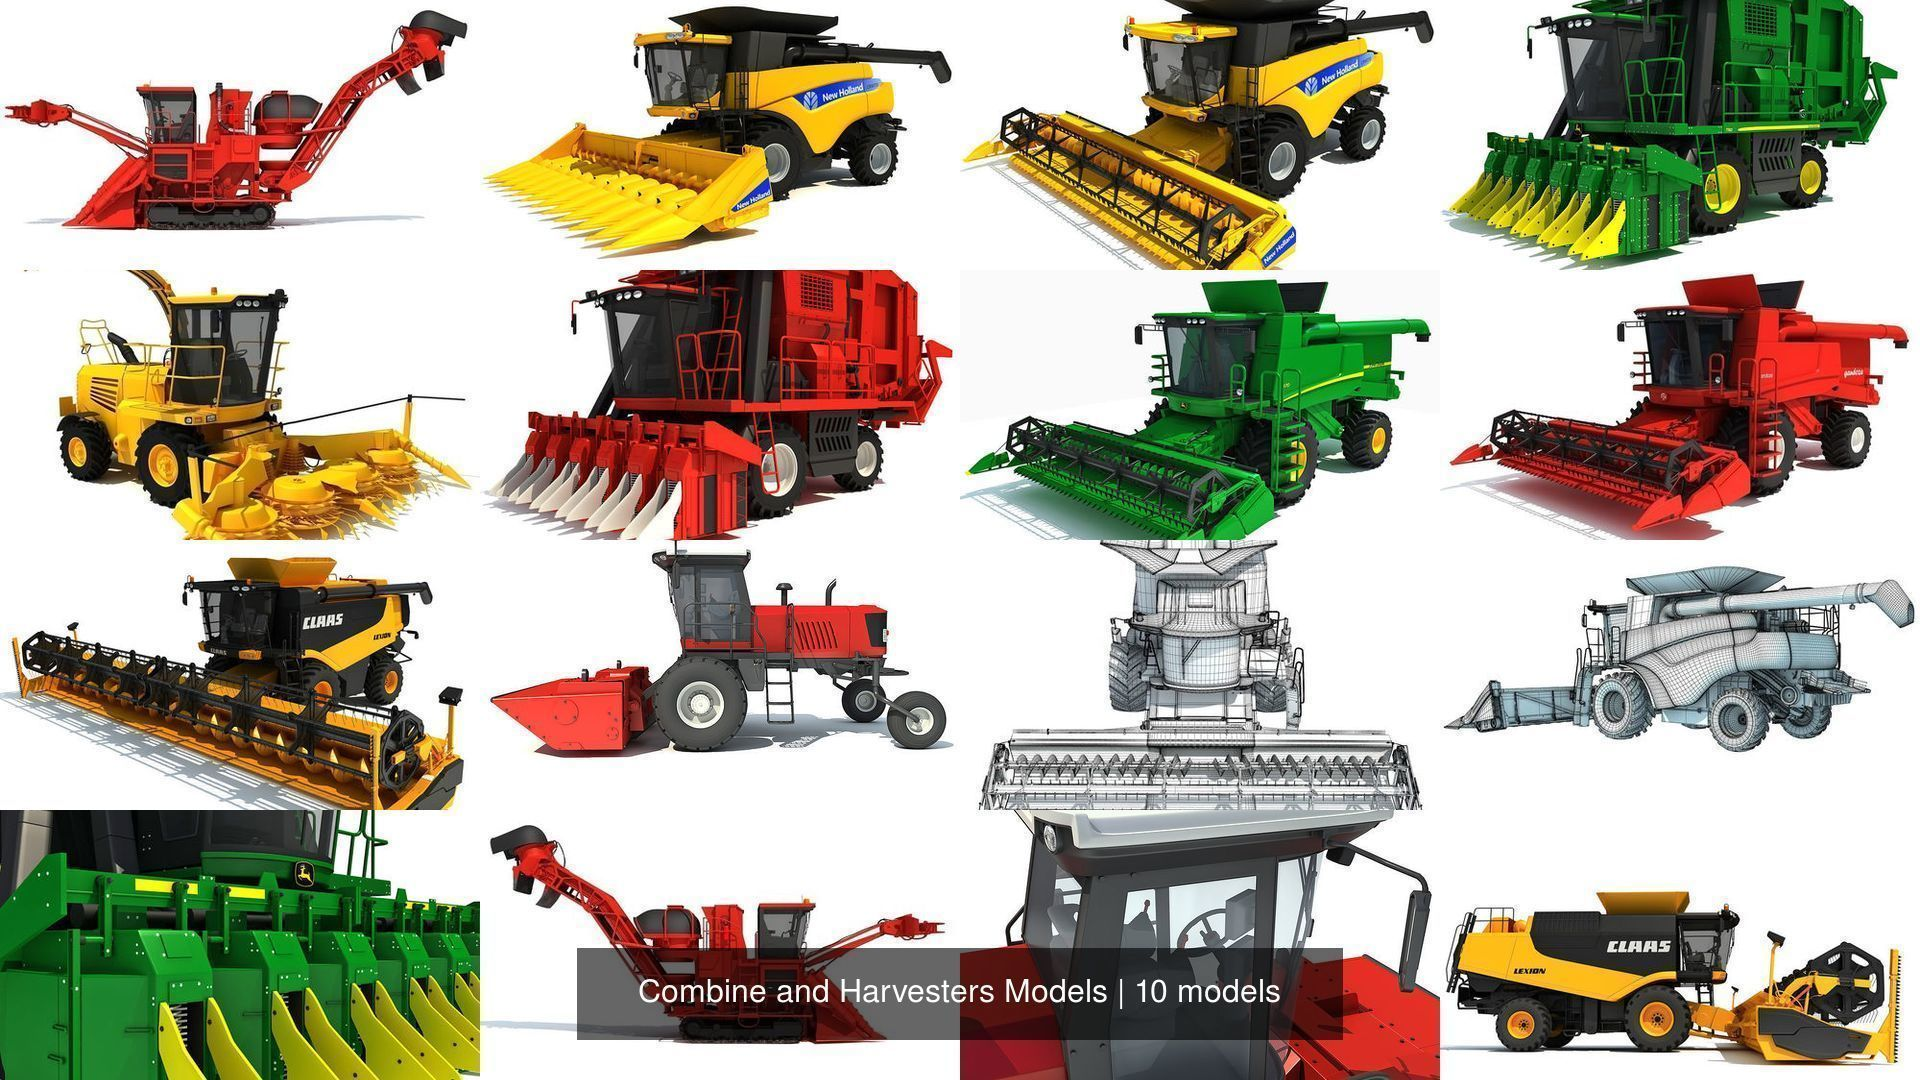 Combine and Harvesters Models